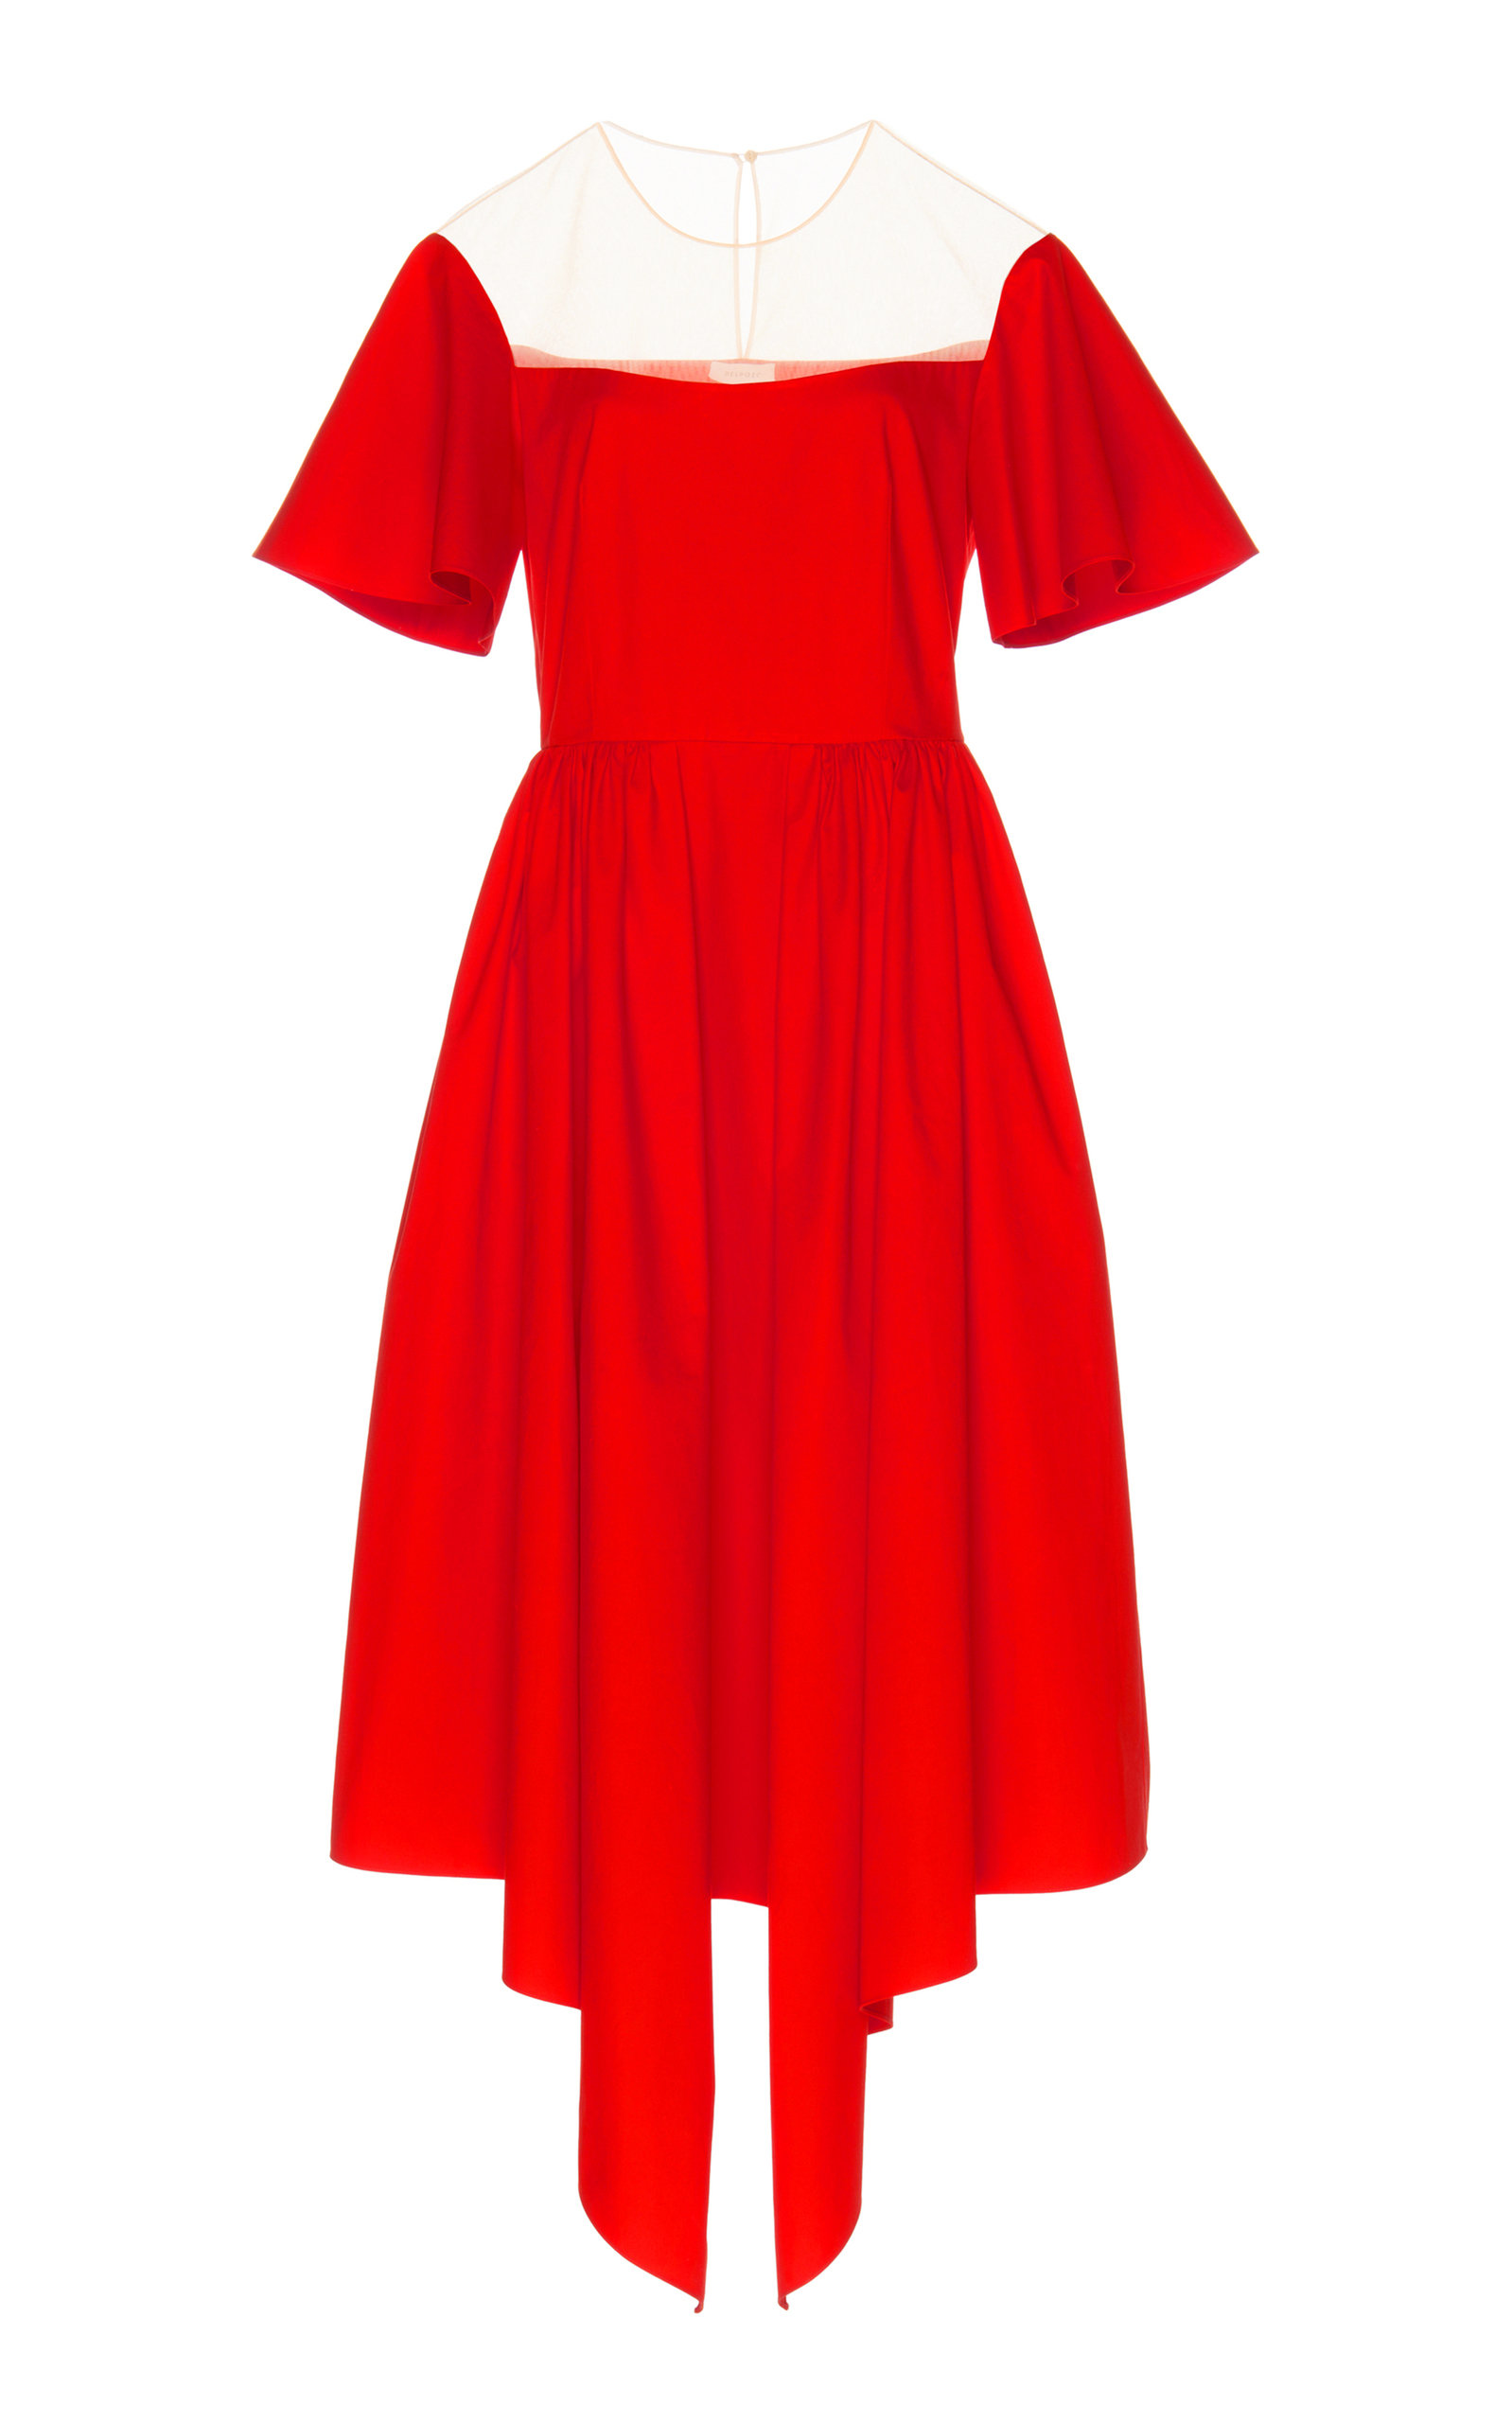 DELPOZO Flared-Sleeve Tulle-Yoke Fit-And-Flare Cotton Cocktail Dress in Red